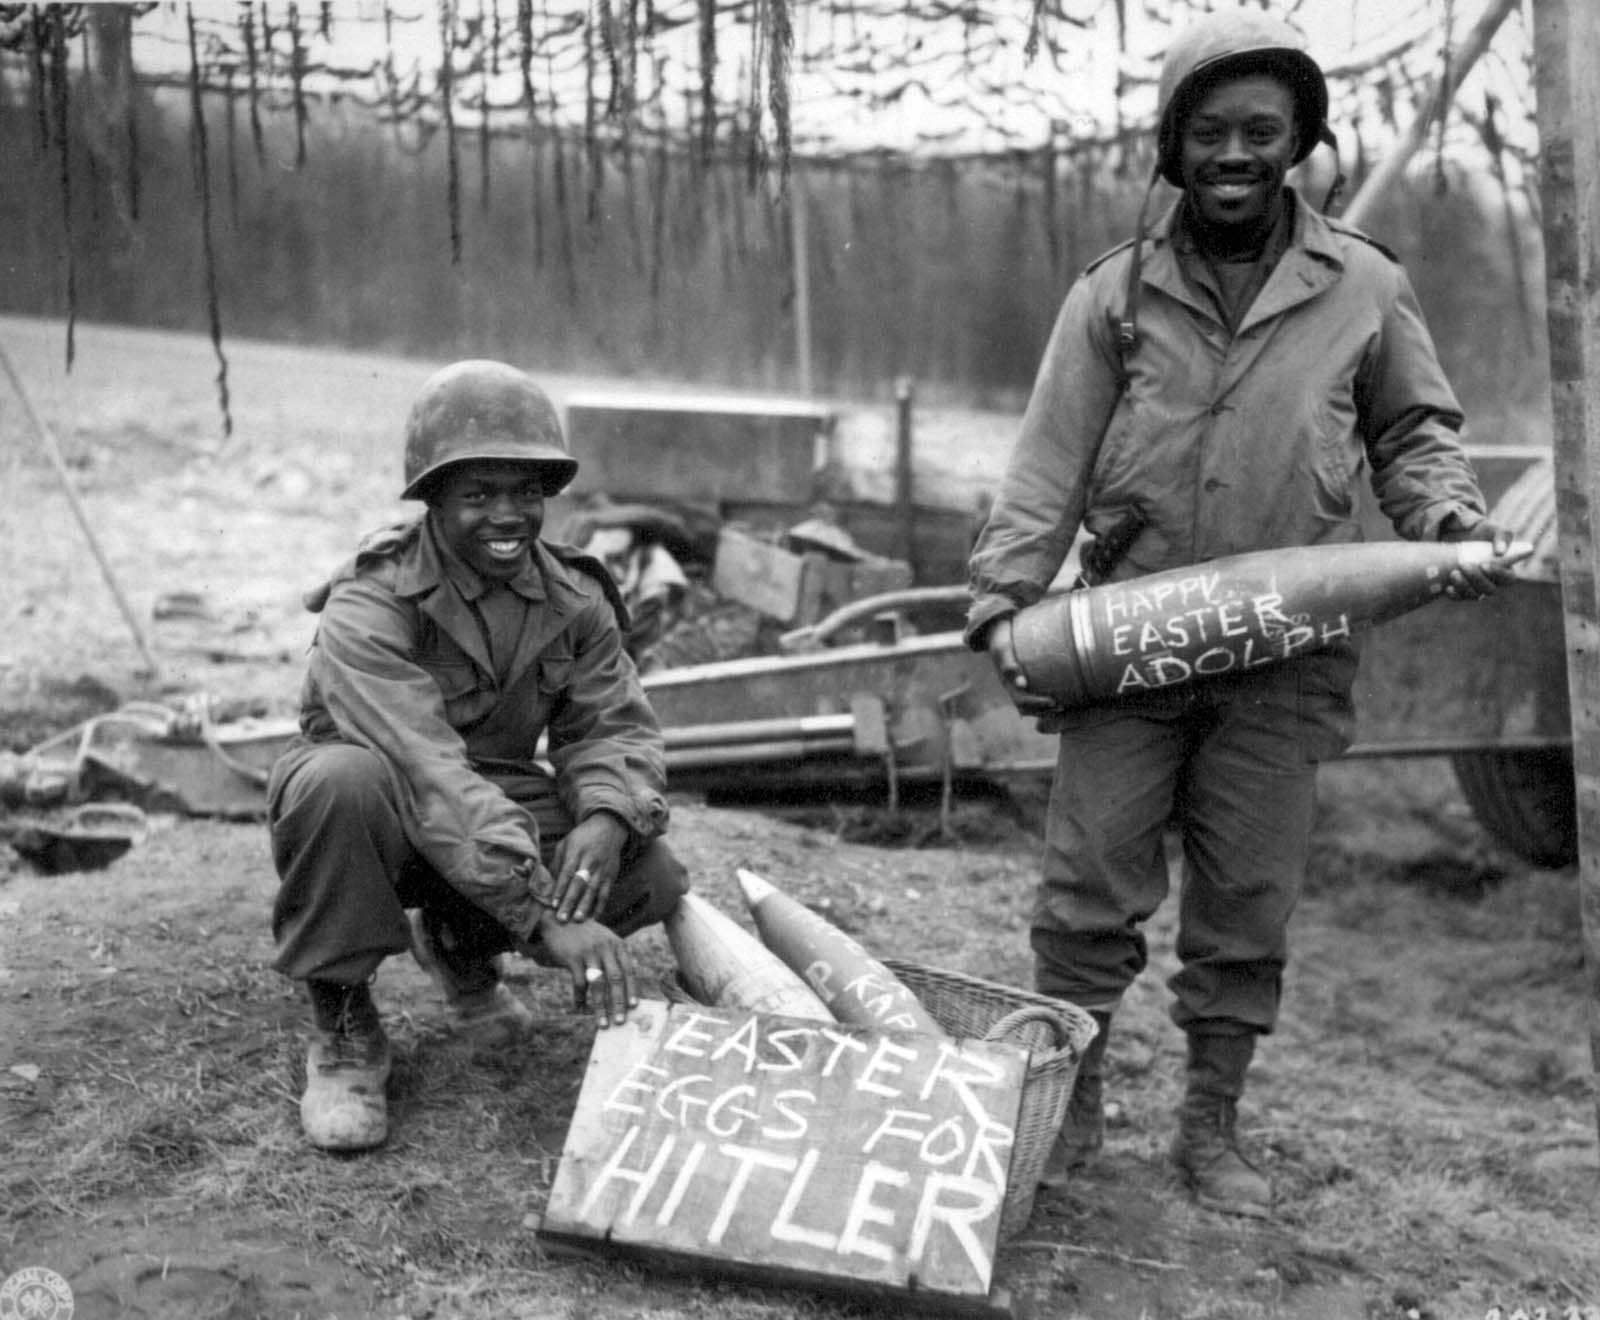 Two black American soldiers with special artillery ammo for Hitler. Photo was taken on March 10, 1945, during the Battle of Remagen.